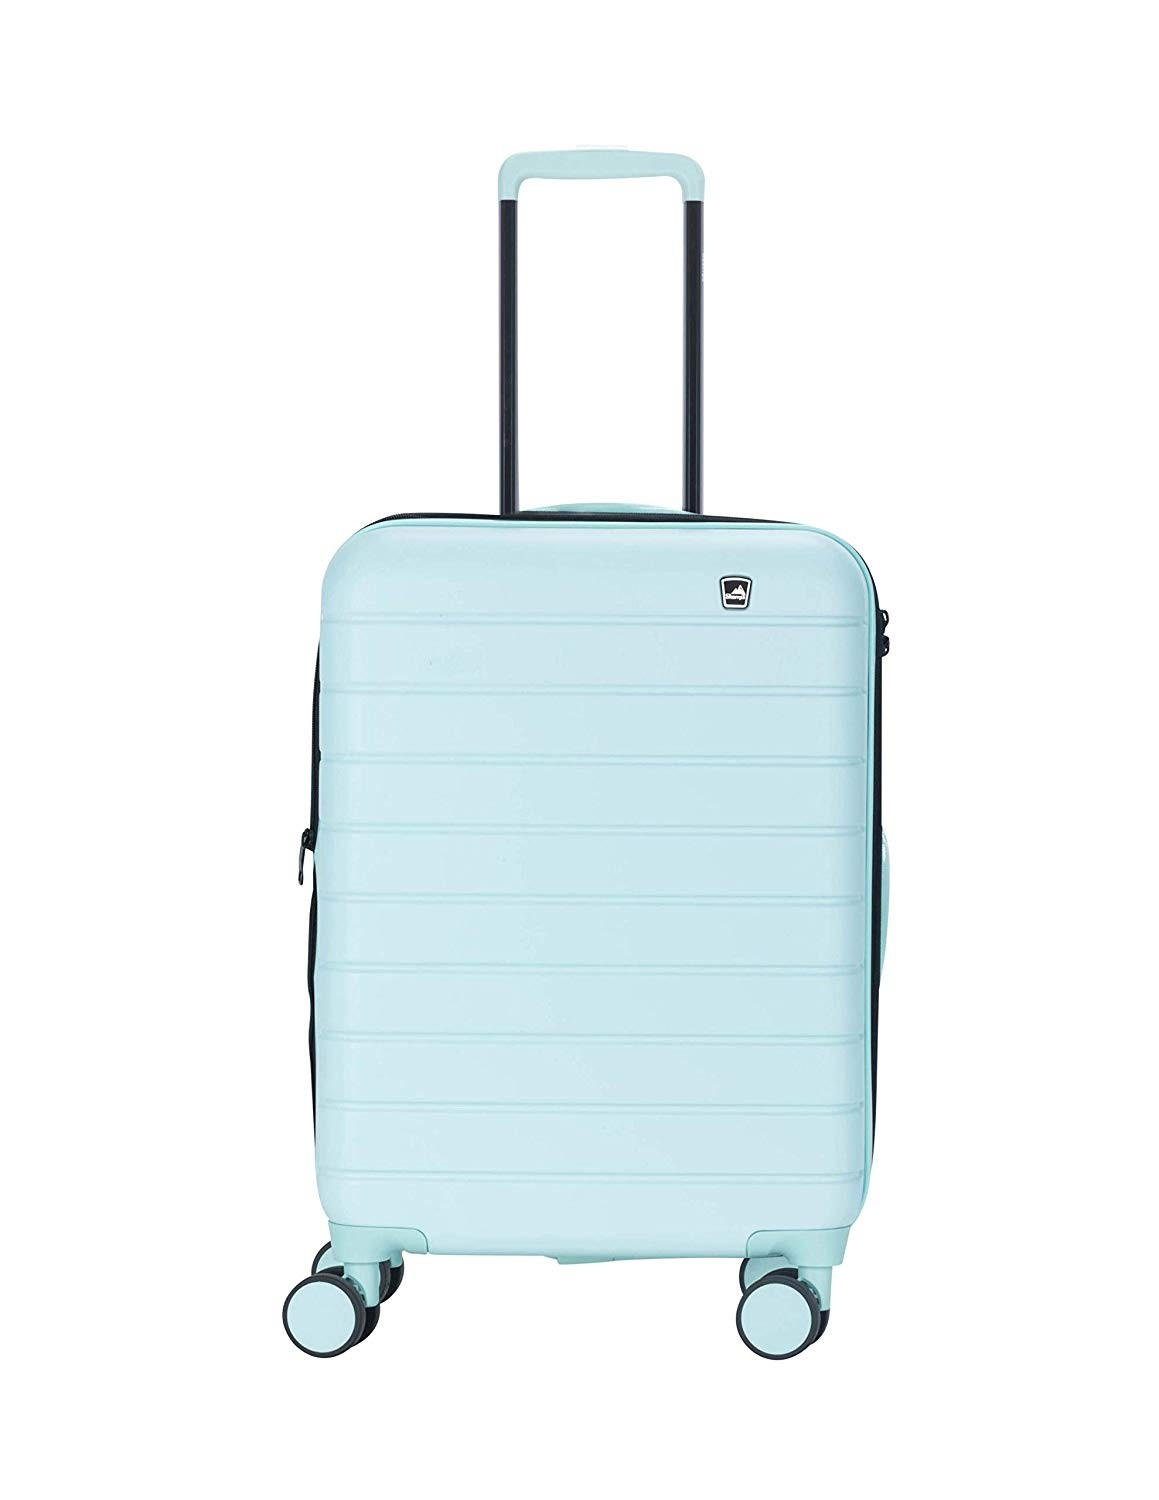 Sherrpa Destiny Luggage Hardside Lightweight Expandable Suitcase Spinner Carry on 20in